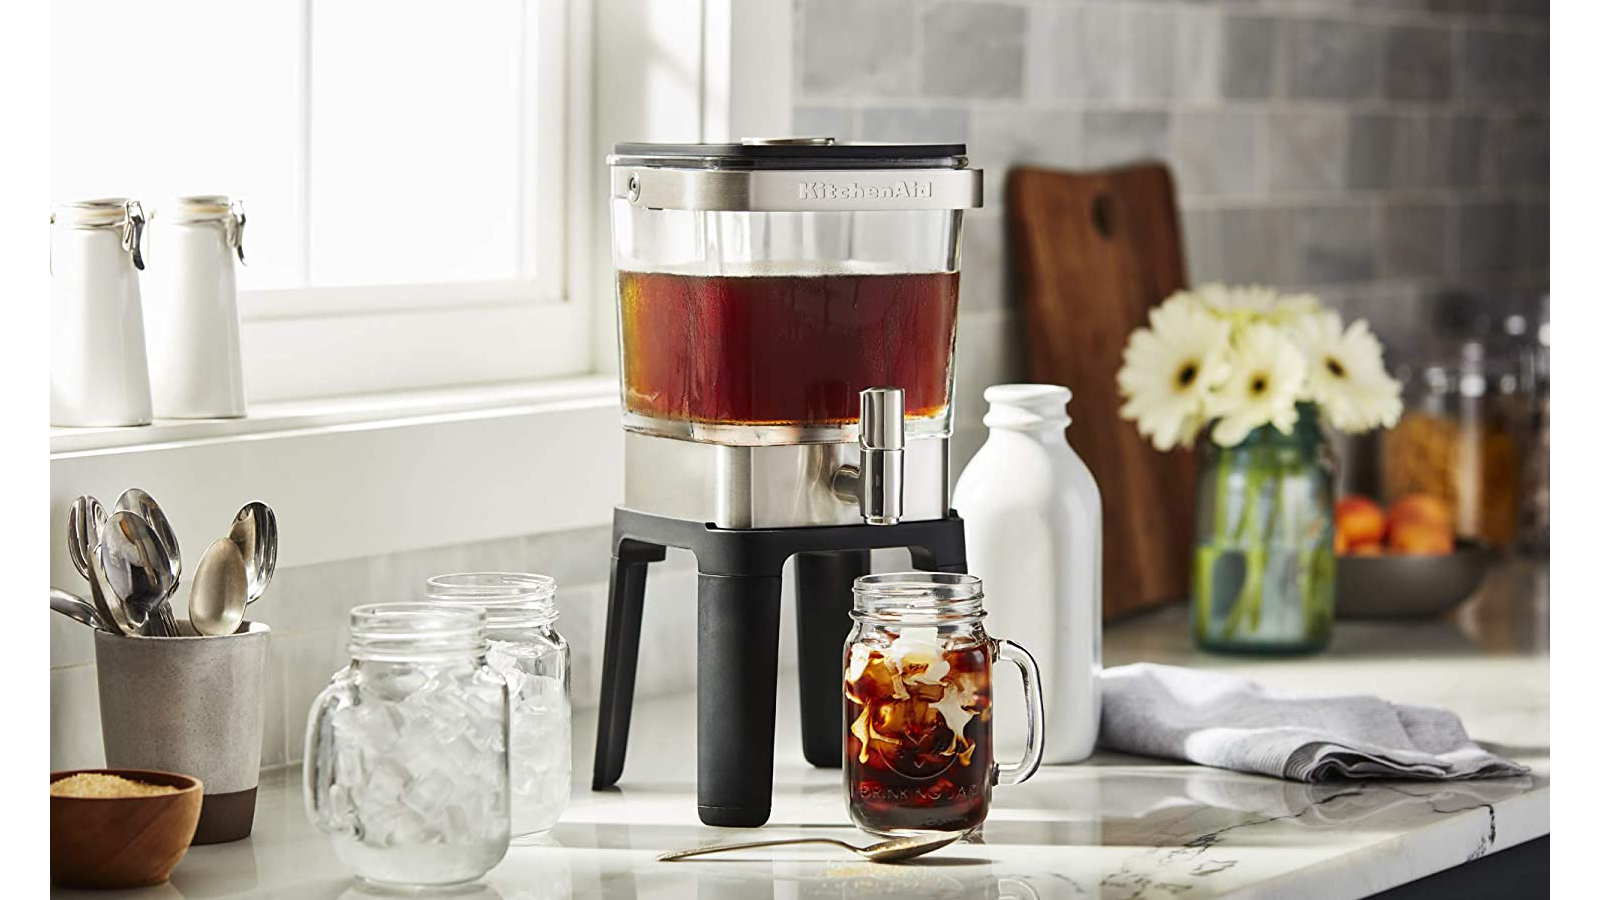 KitchenAid best cold brew coffee maker for large batches carrying handle stainless steel dispensing tap